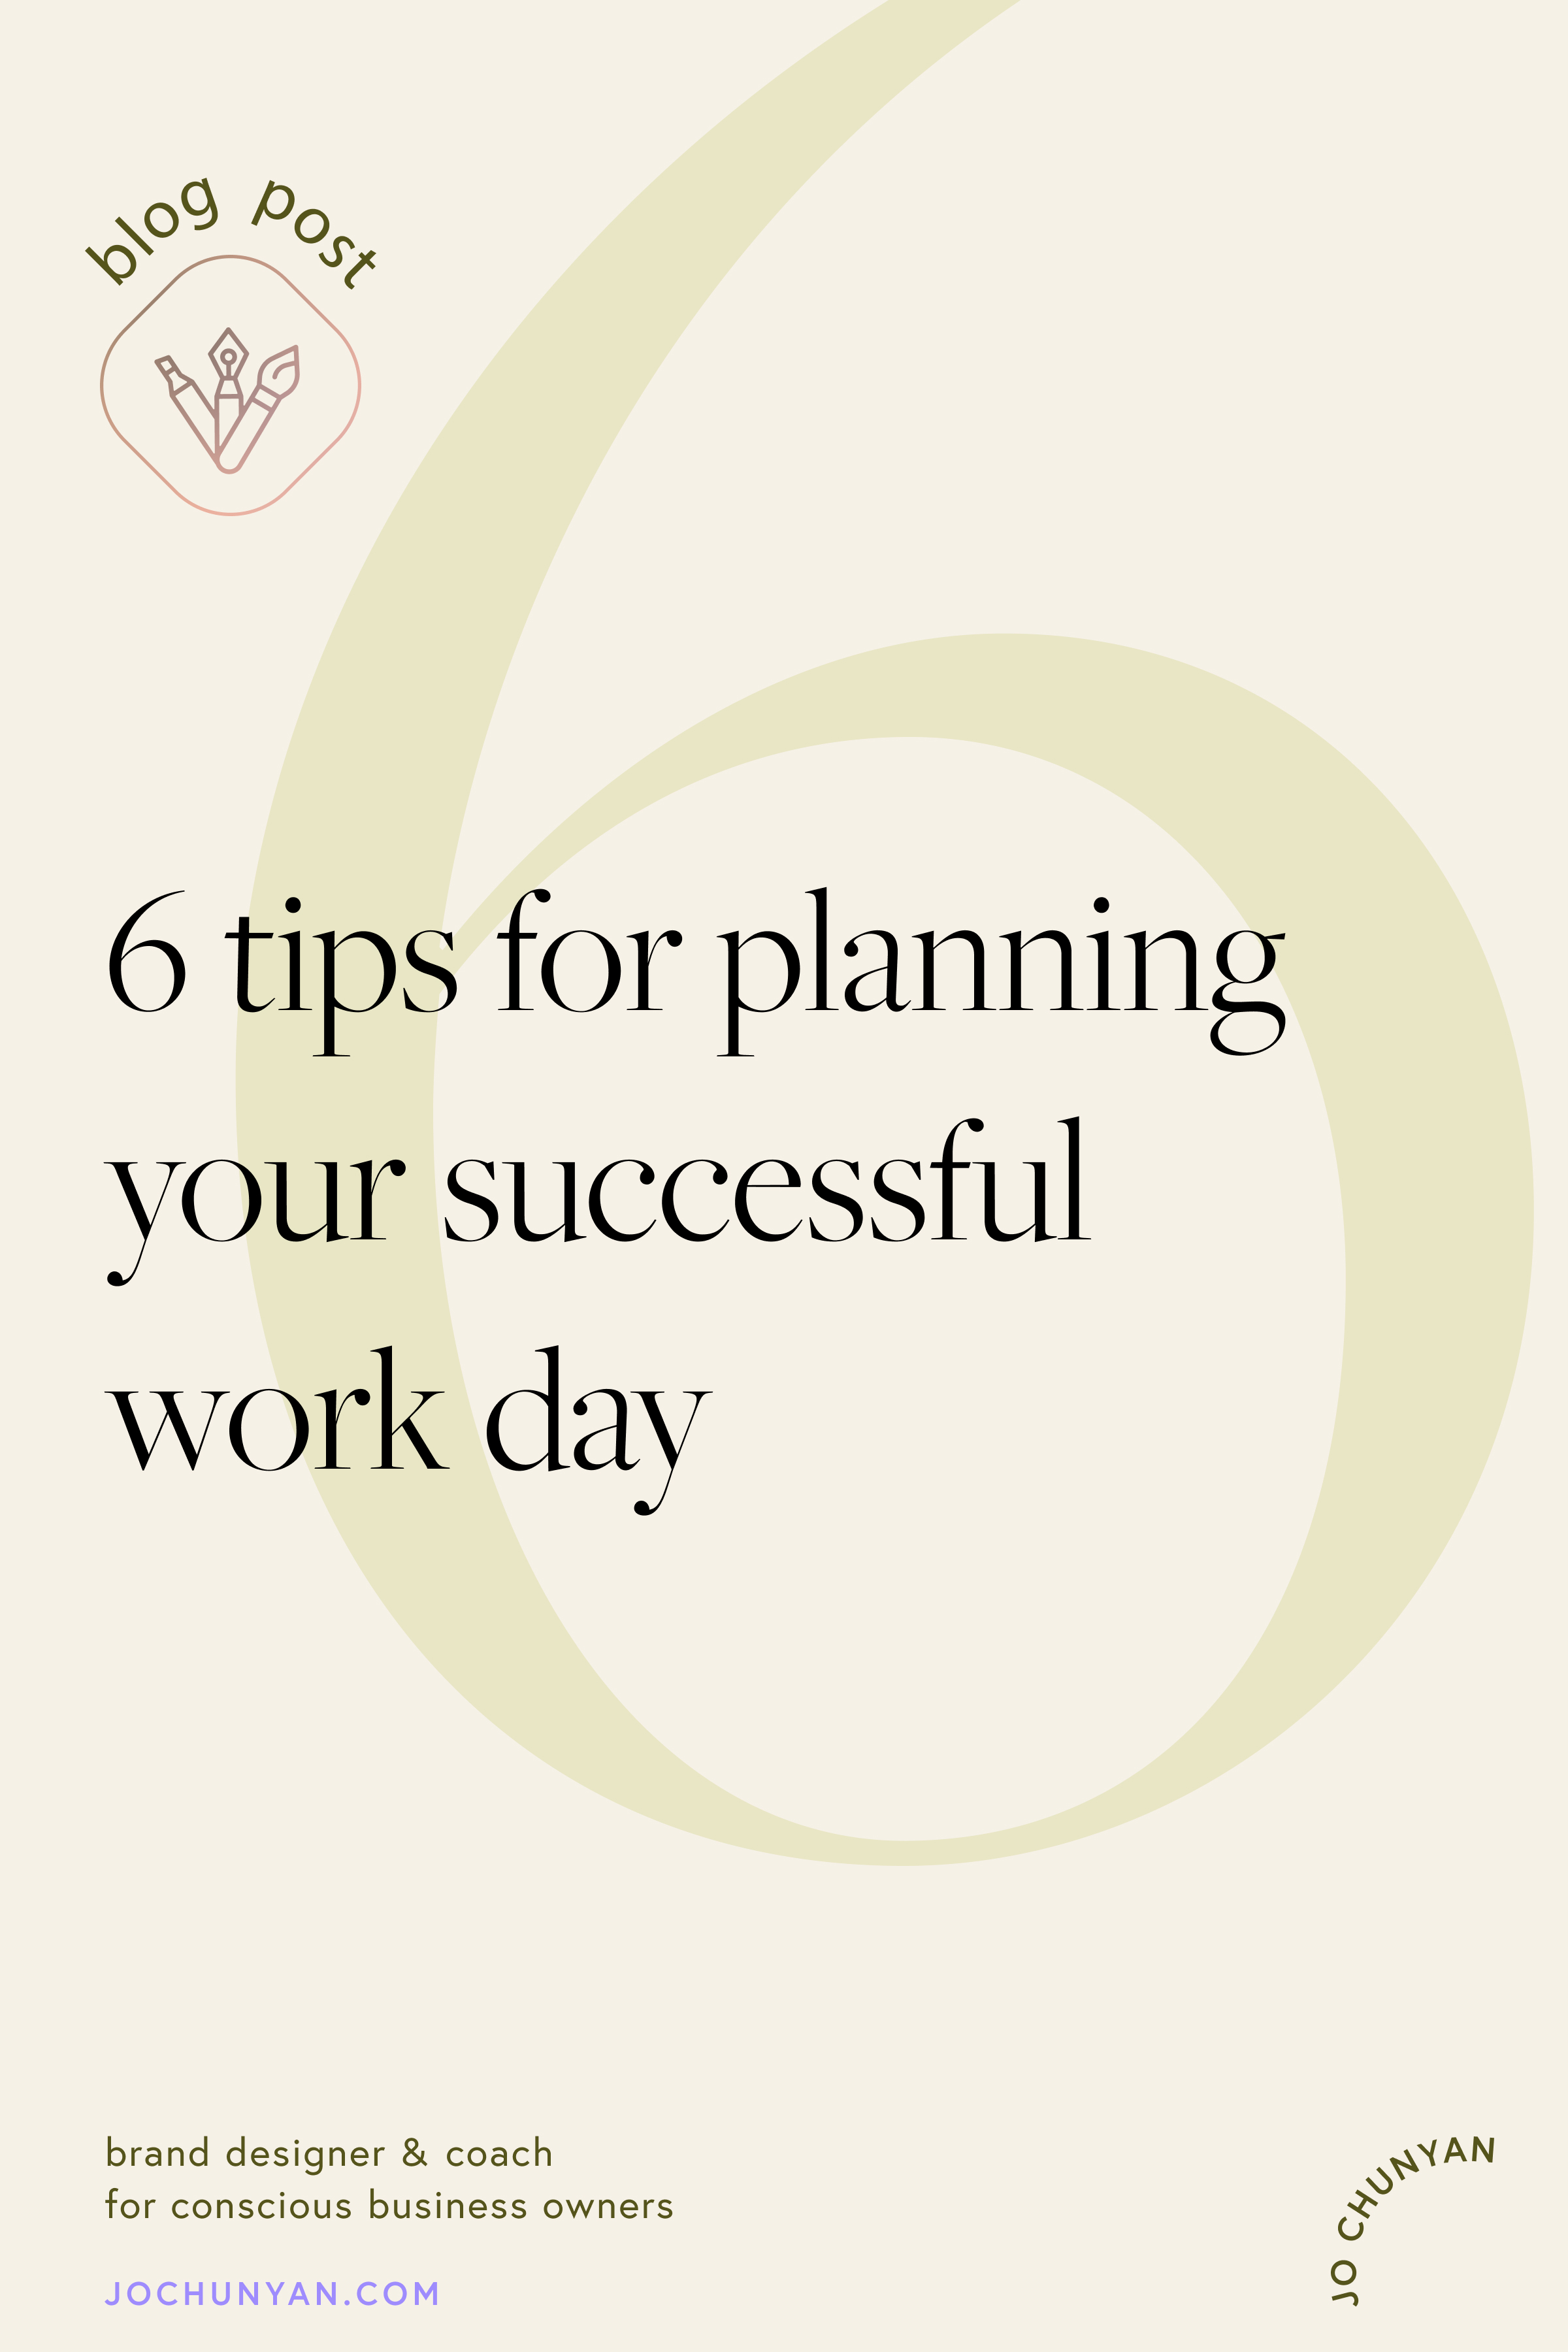 6 tips for planning your successful work day